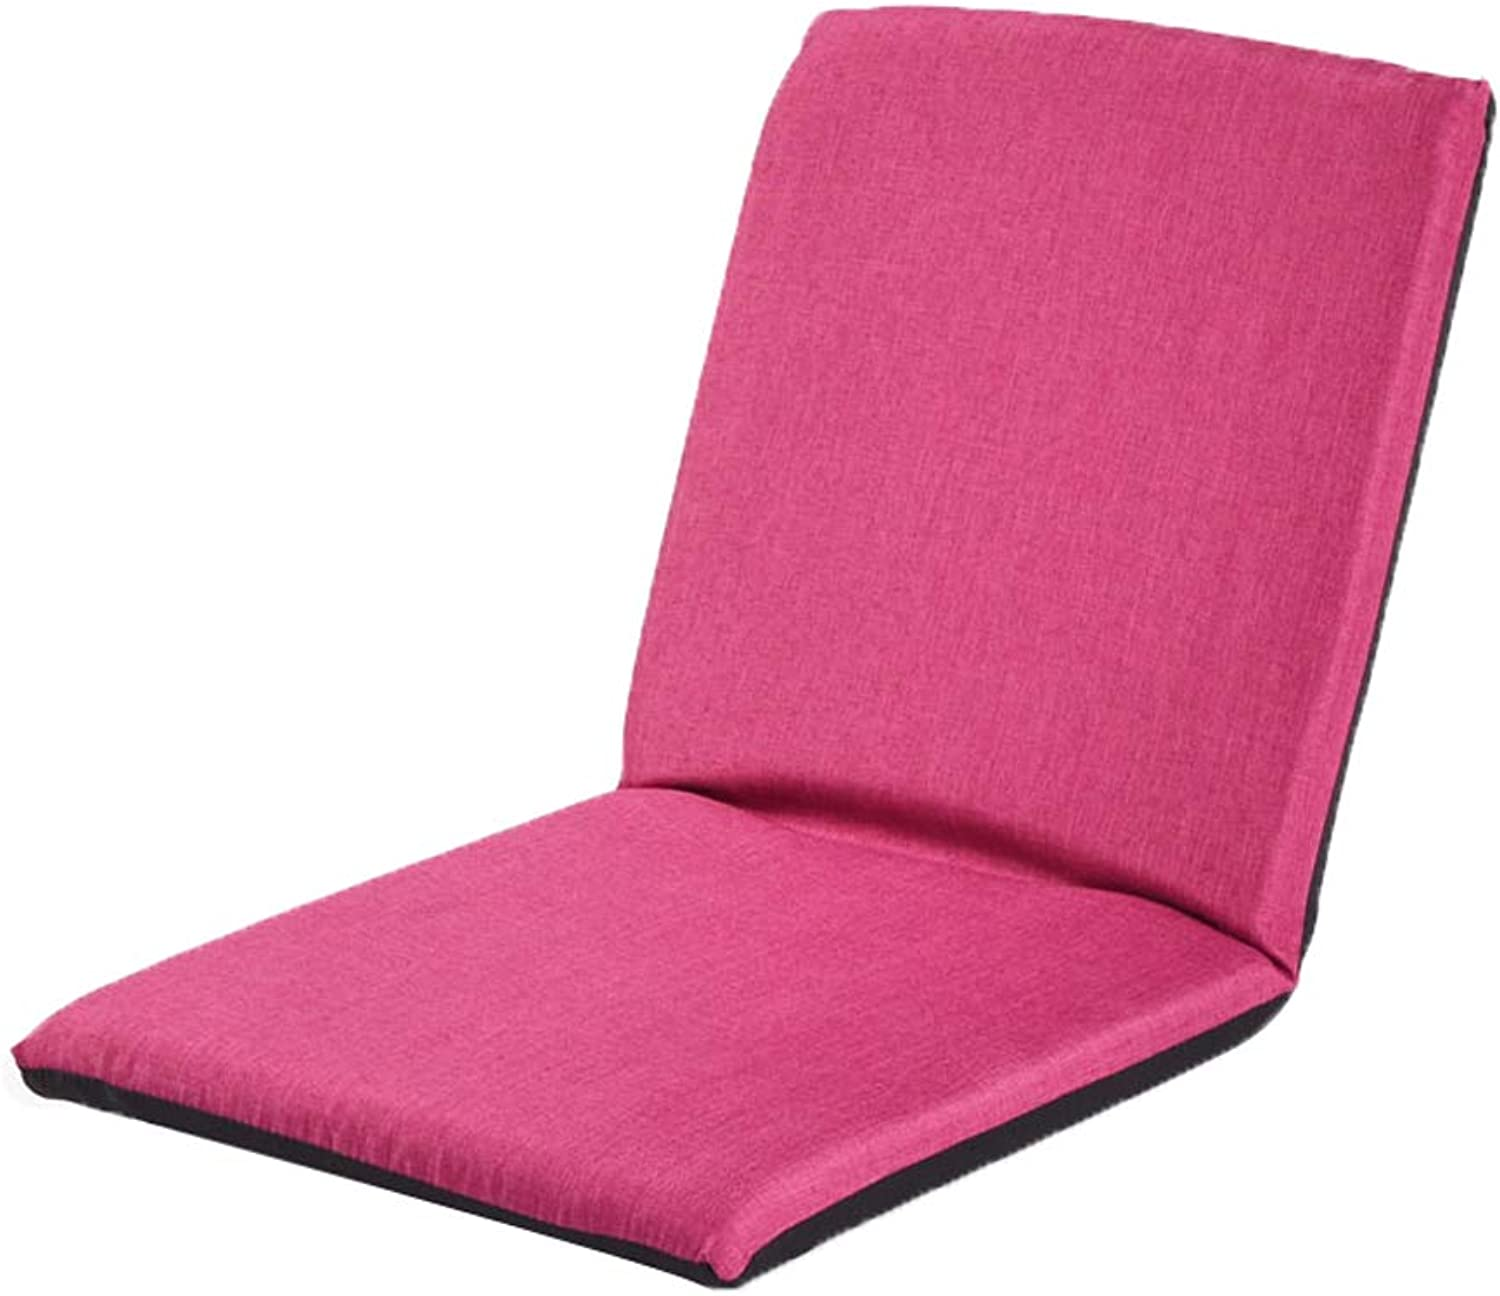 Lazy Sofa, Bed Leisure Chair Foldable Single Balcony Bay Window Meditation Chair Lazy Lounge Chair Folding Mat, Multi-color Optional (color   pink red)